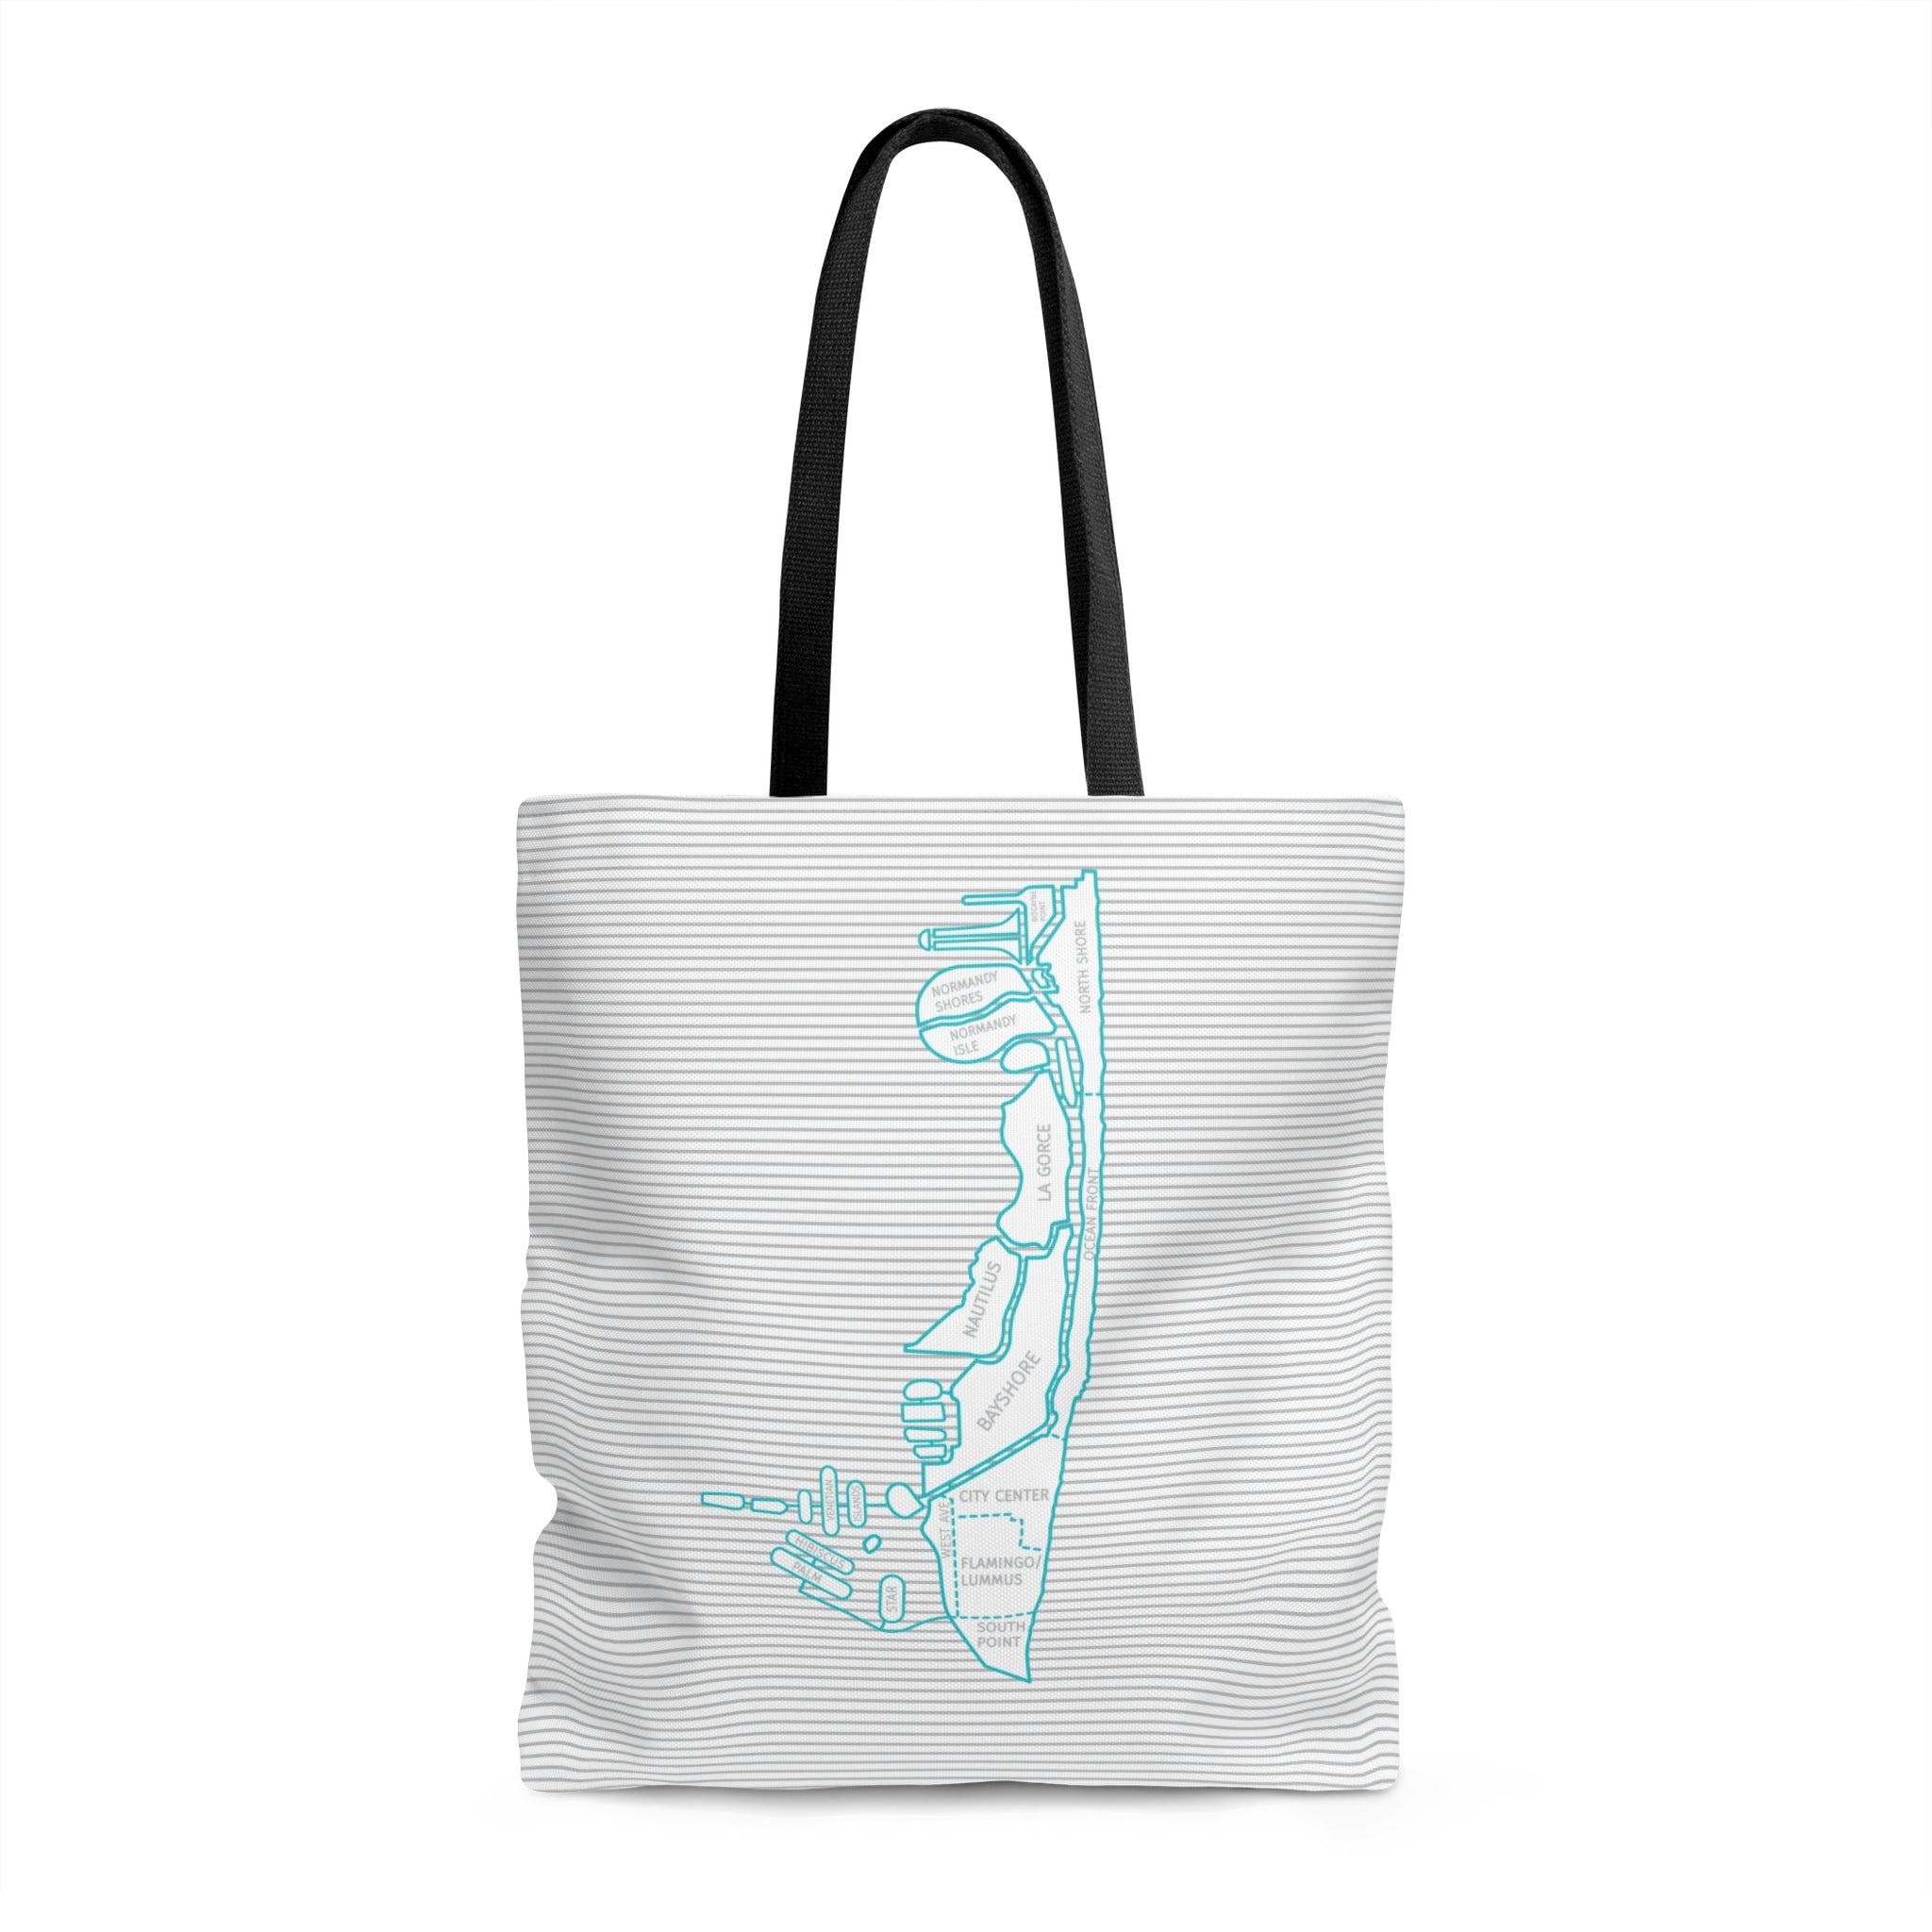 Miami Beach Neighborhood Map Tote Bags - Designhype - City Inspired Accessories